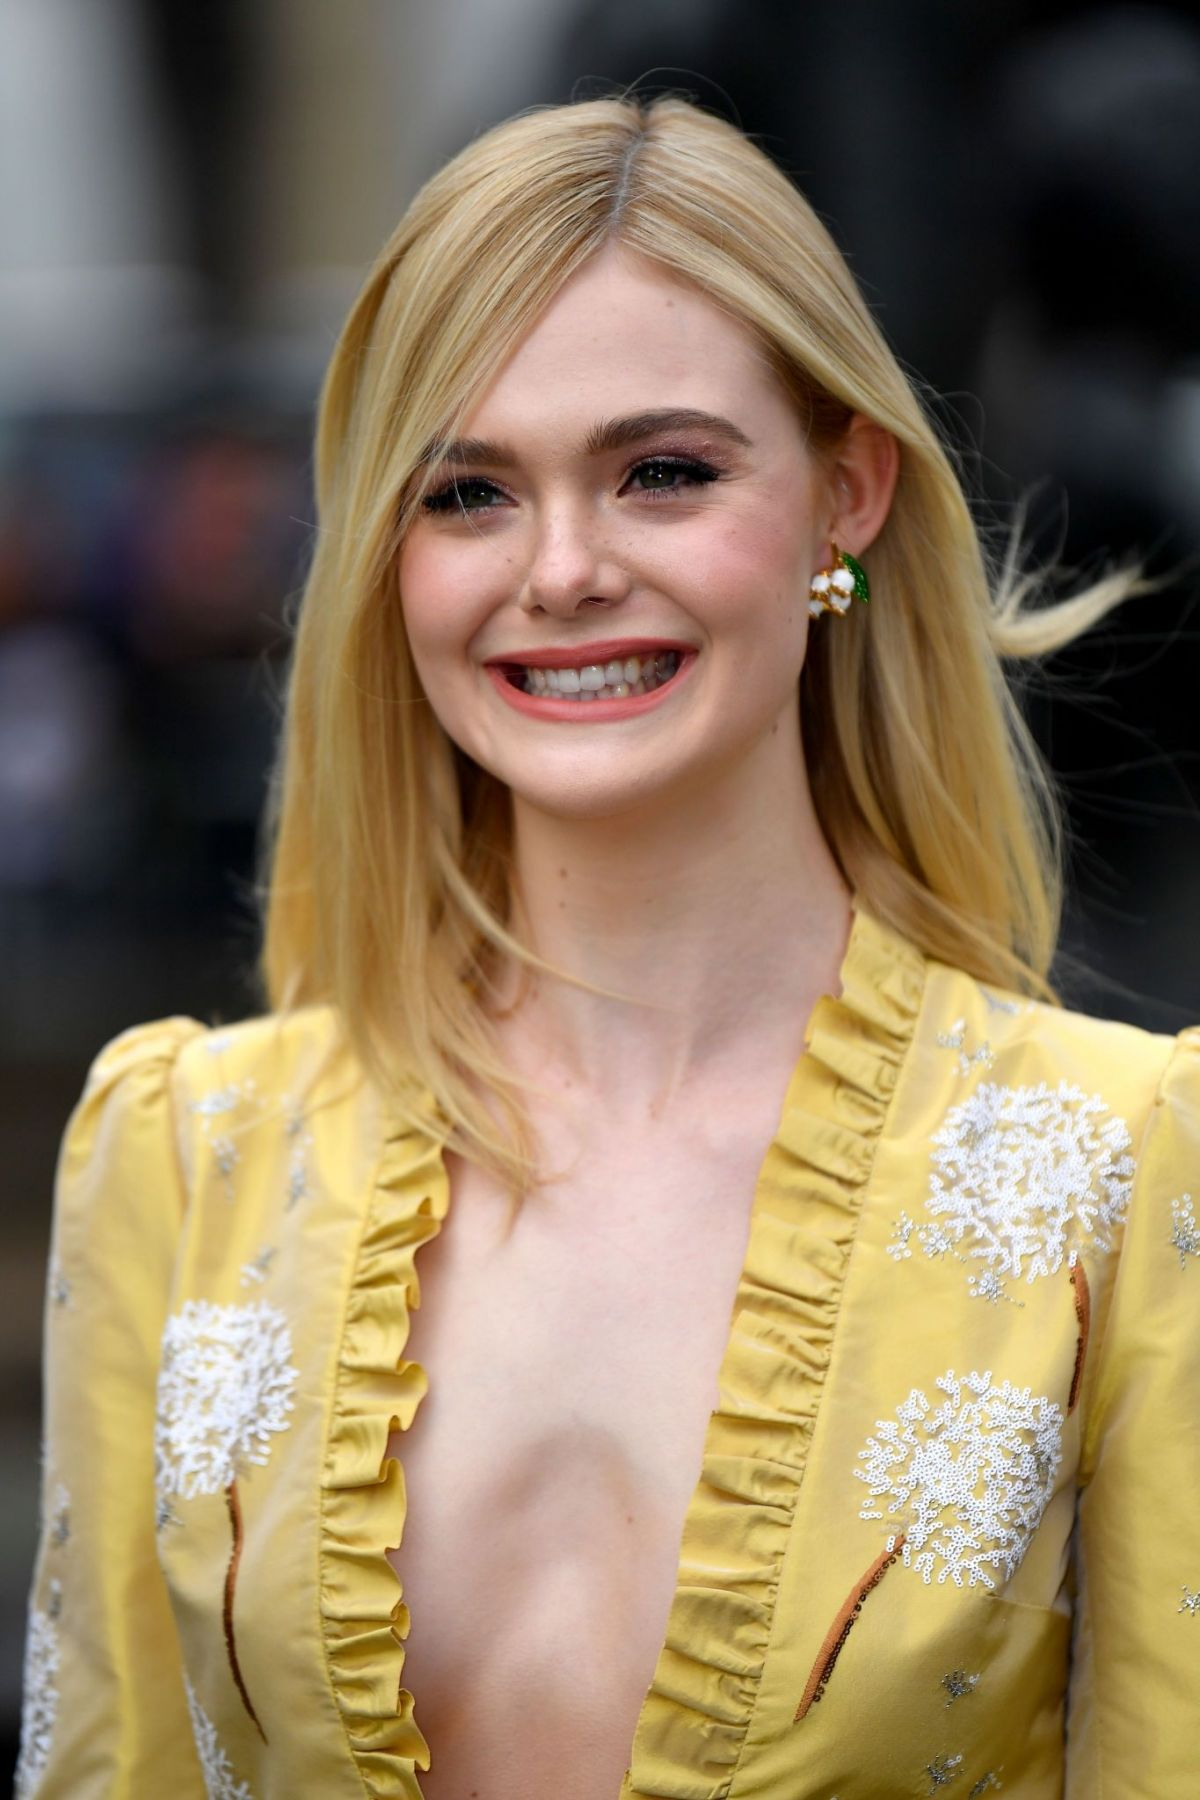 Elle Fanning Covers Fashion Magazine Says She Loves Being: ELLE FANNING At Miu Miu Fashion Show At PFW In Paris 03/05